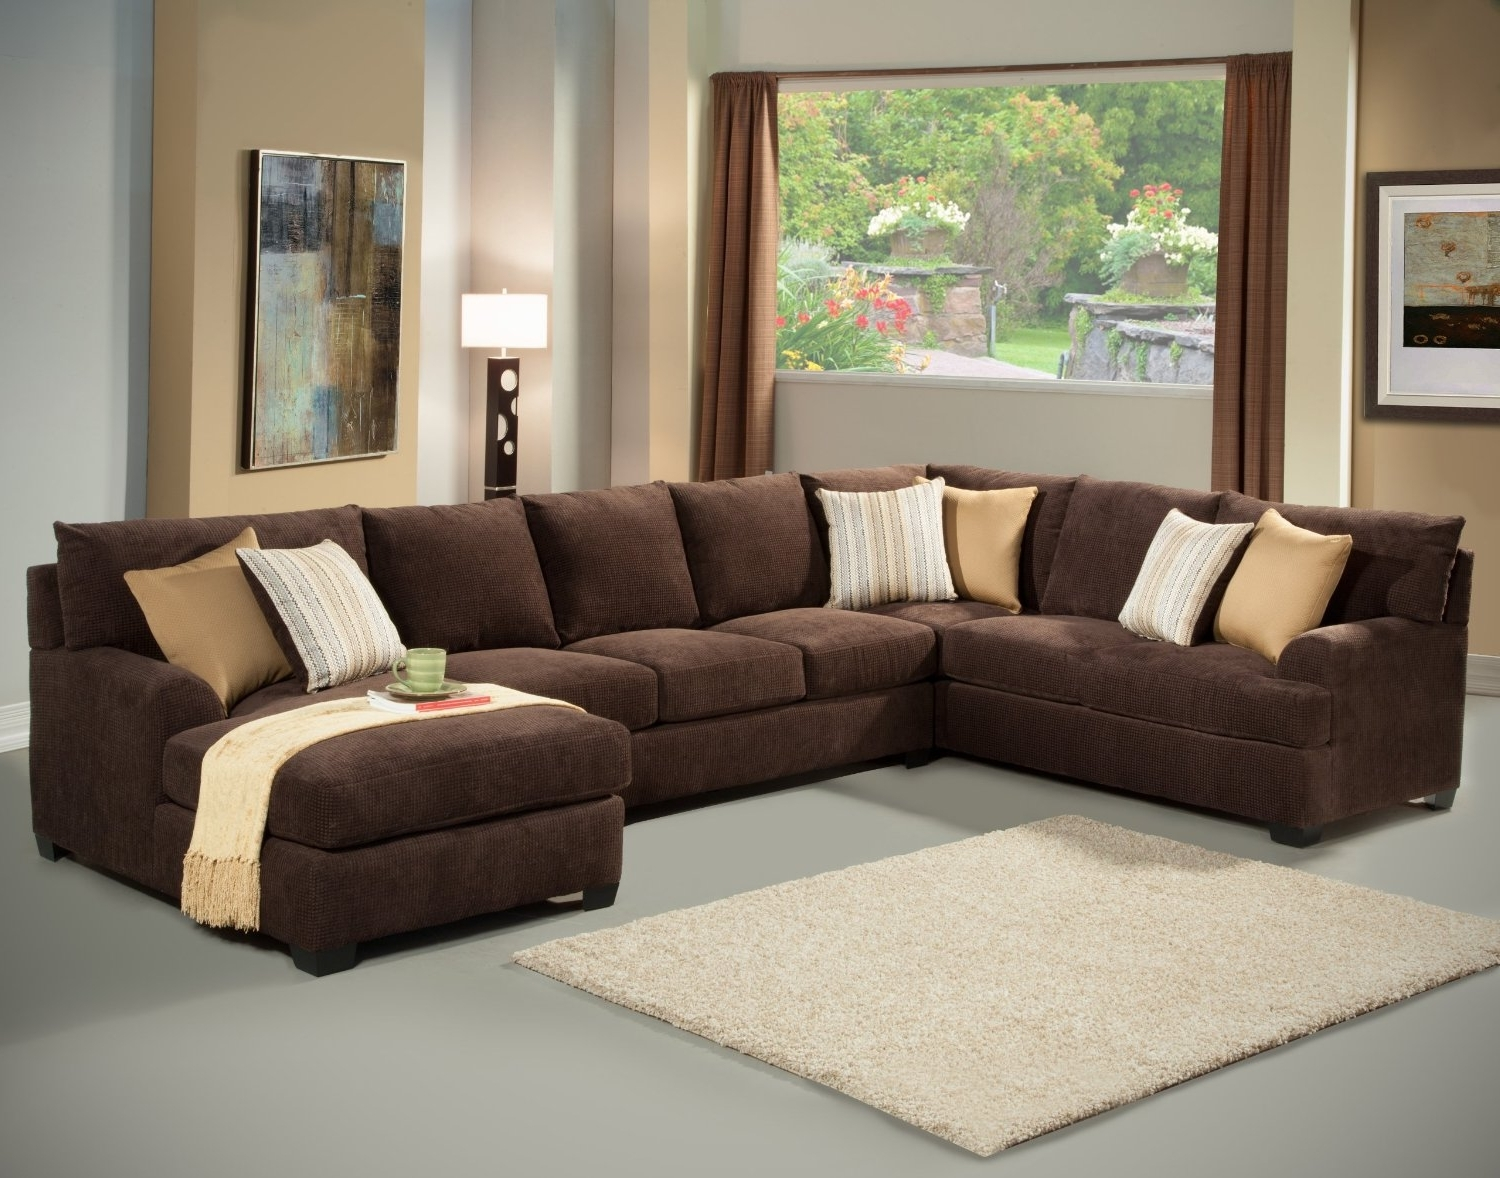 Favorite Large Sectionals With Chaise With Living Room: Large Sectional Sofas In Brown With Photo In Wall (View 3 of 15)